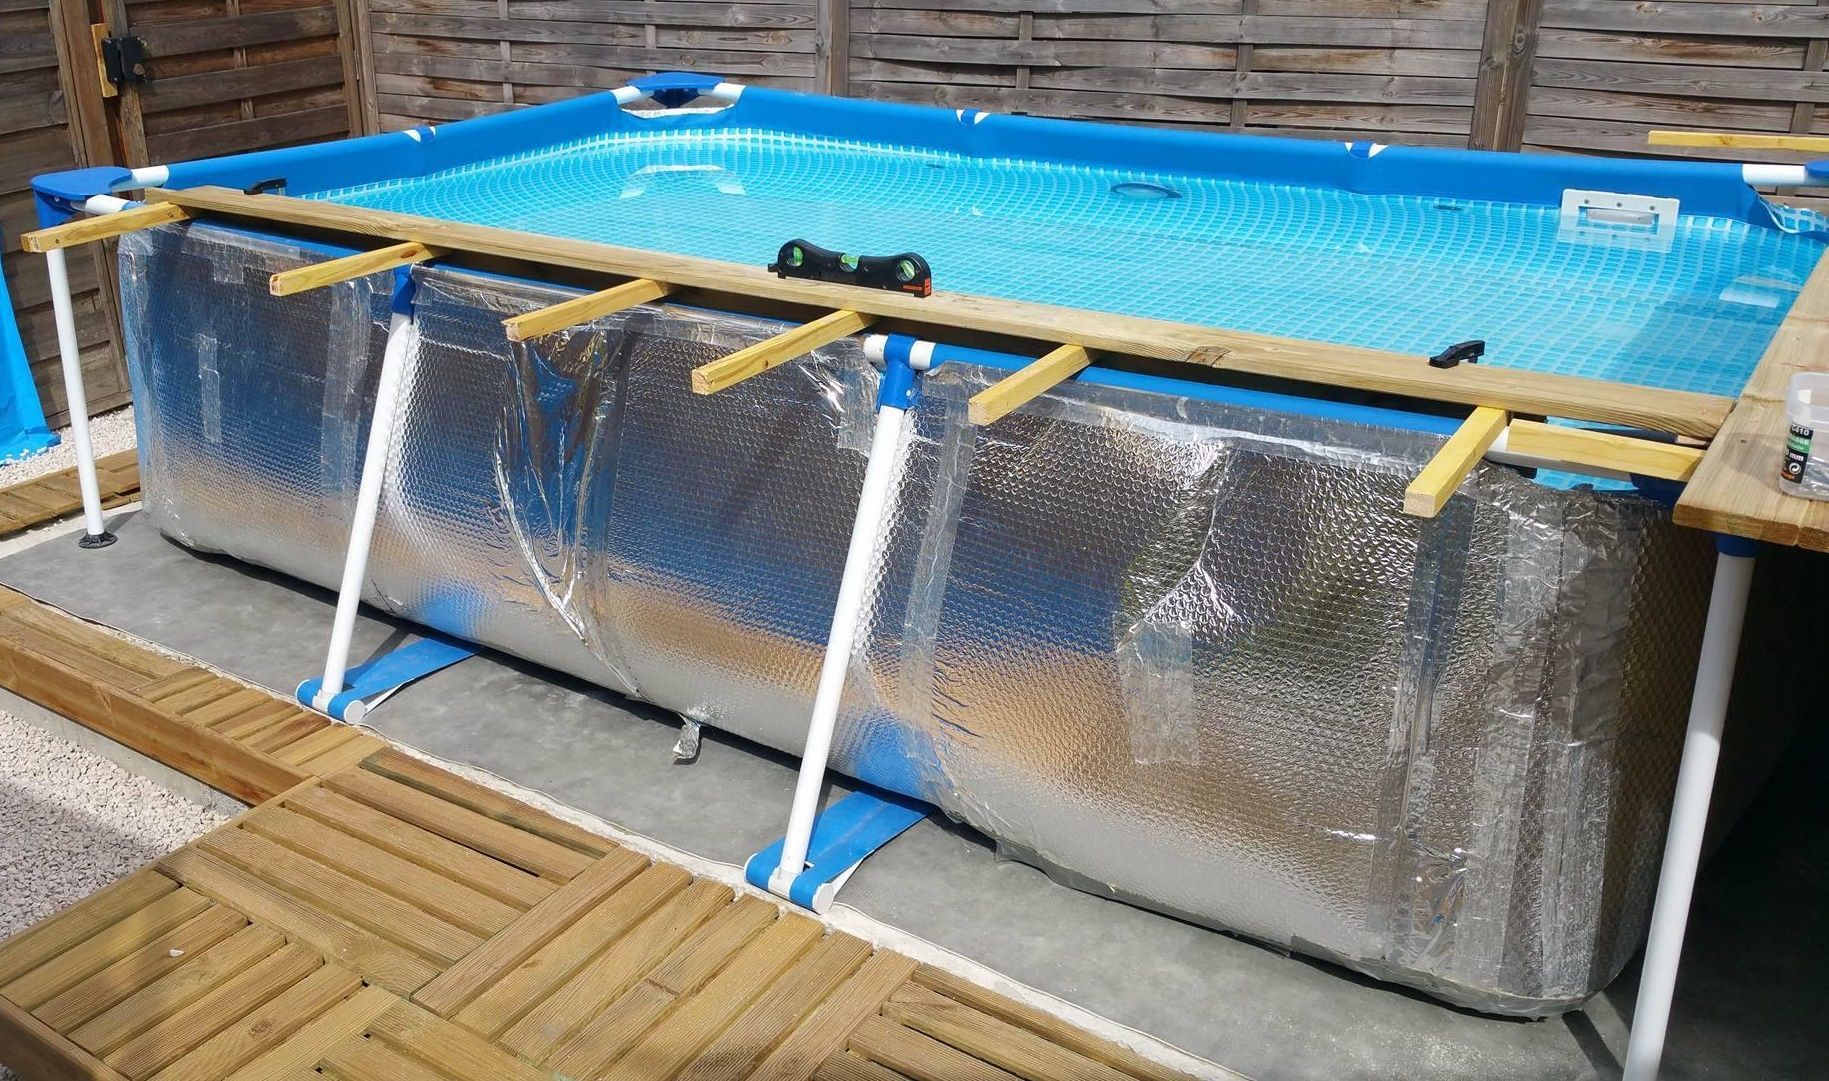 Piscine Habillage Piscine Hors Sol Piscine Intex Piscine